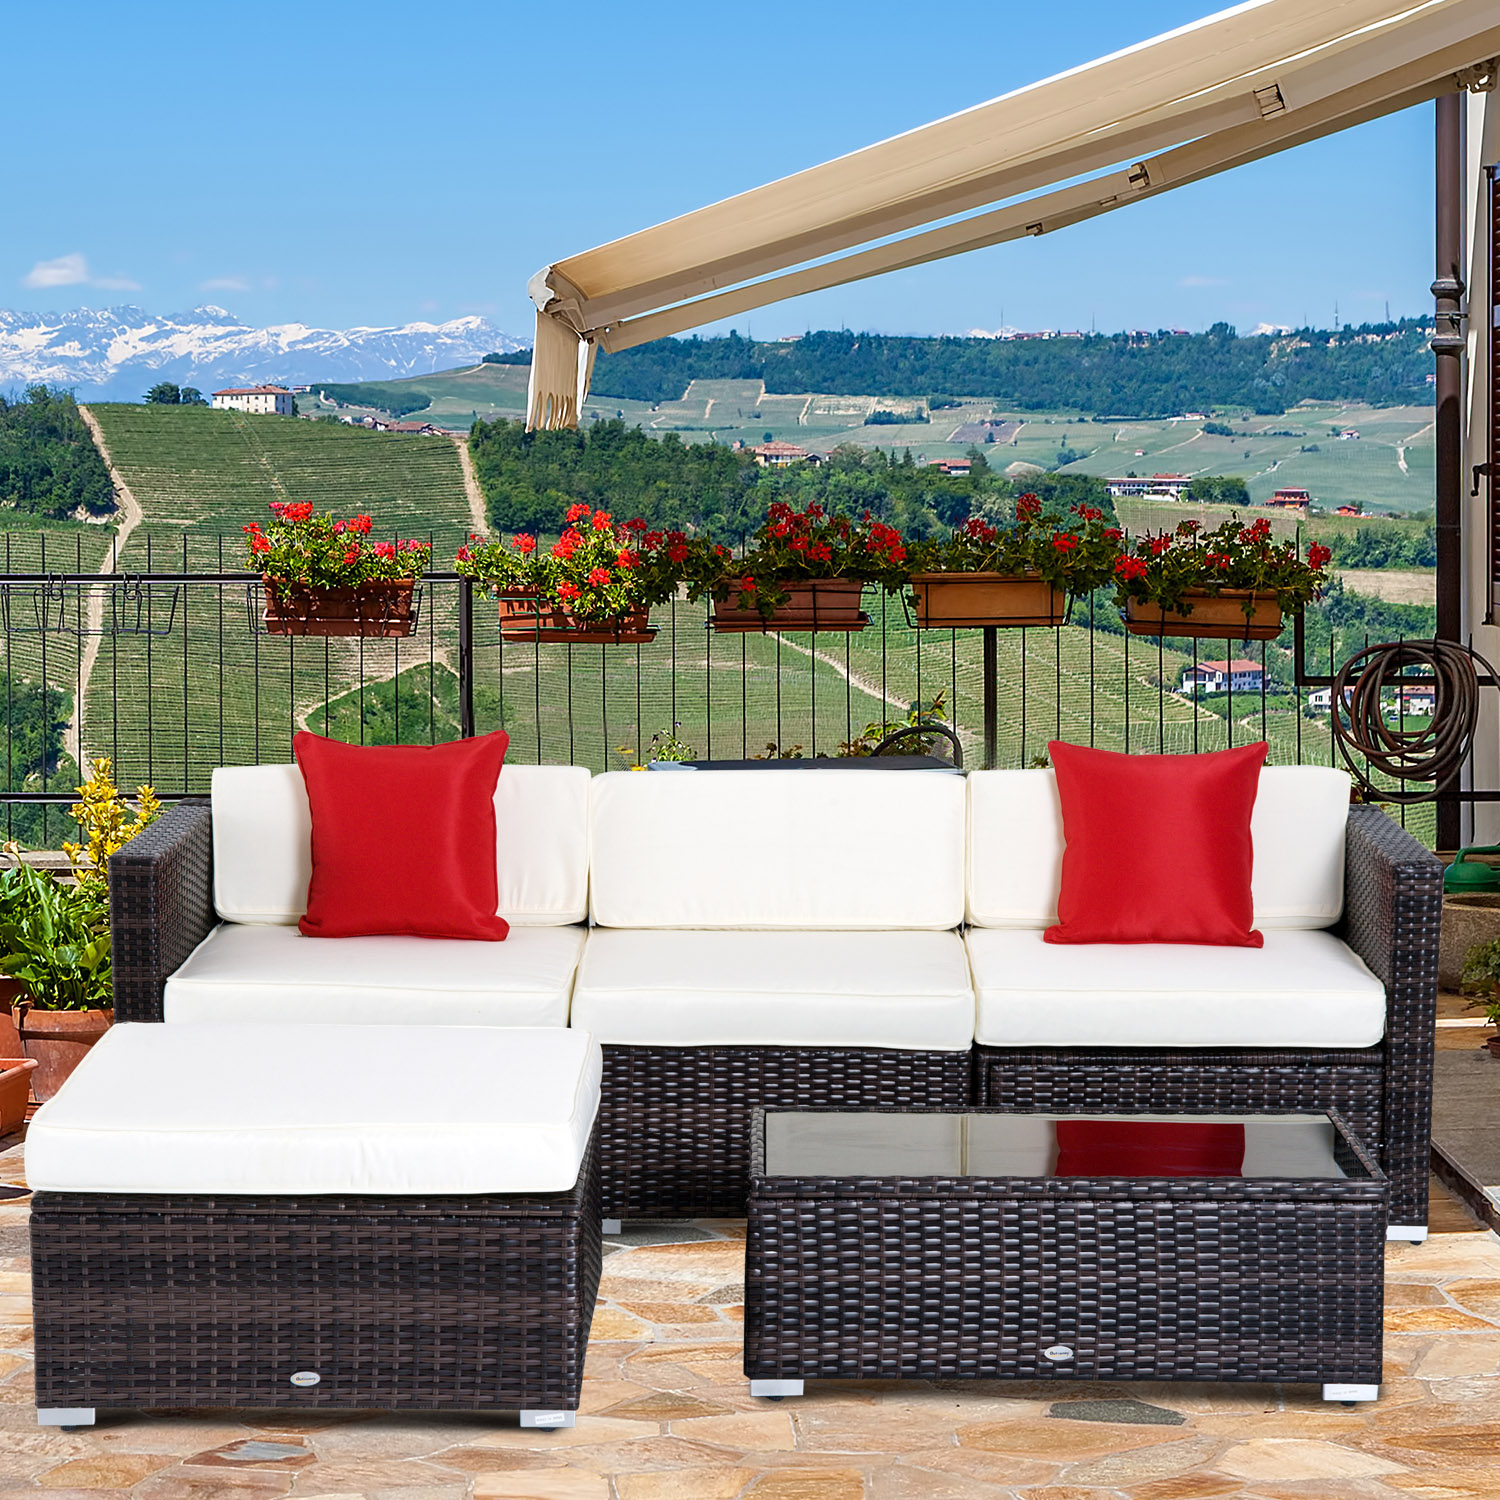 Image of CAD $729.99 Outsunny 5pc Outdoor Modular Rattan Wicker Sofa Set Garden Sectional Patio Furniture with Table / 5pcs Cushioned Seat Backyard Dark Coffee Canada 25093585944